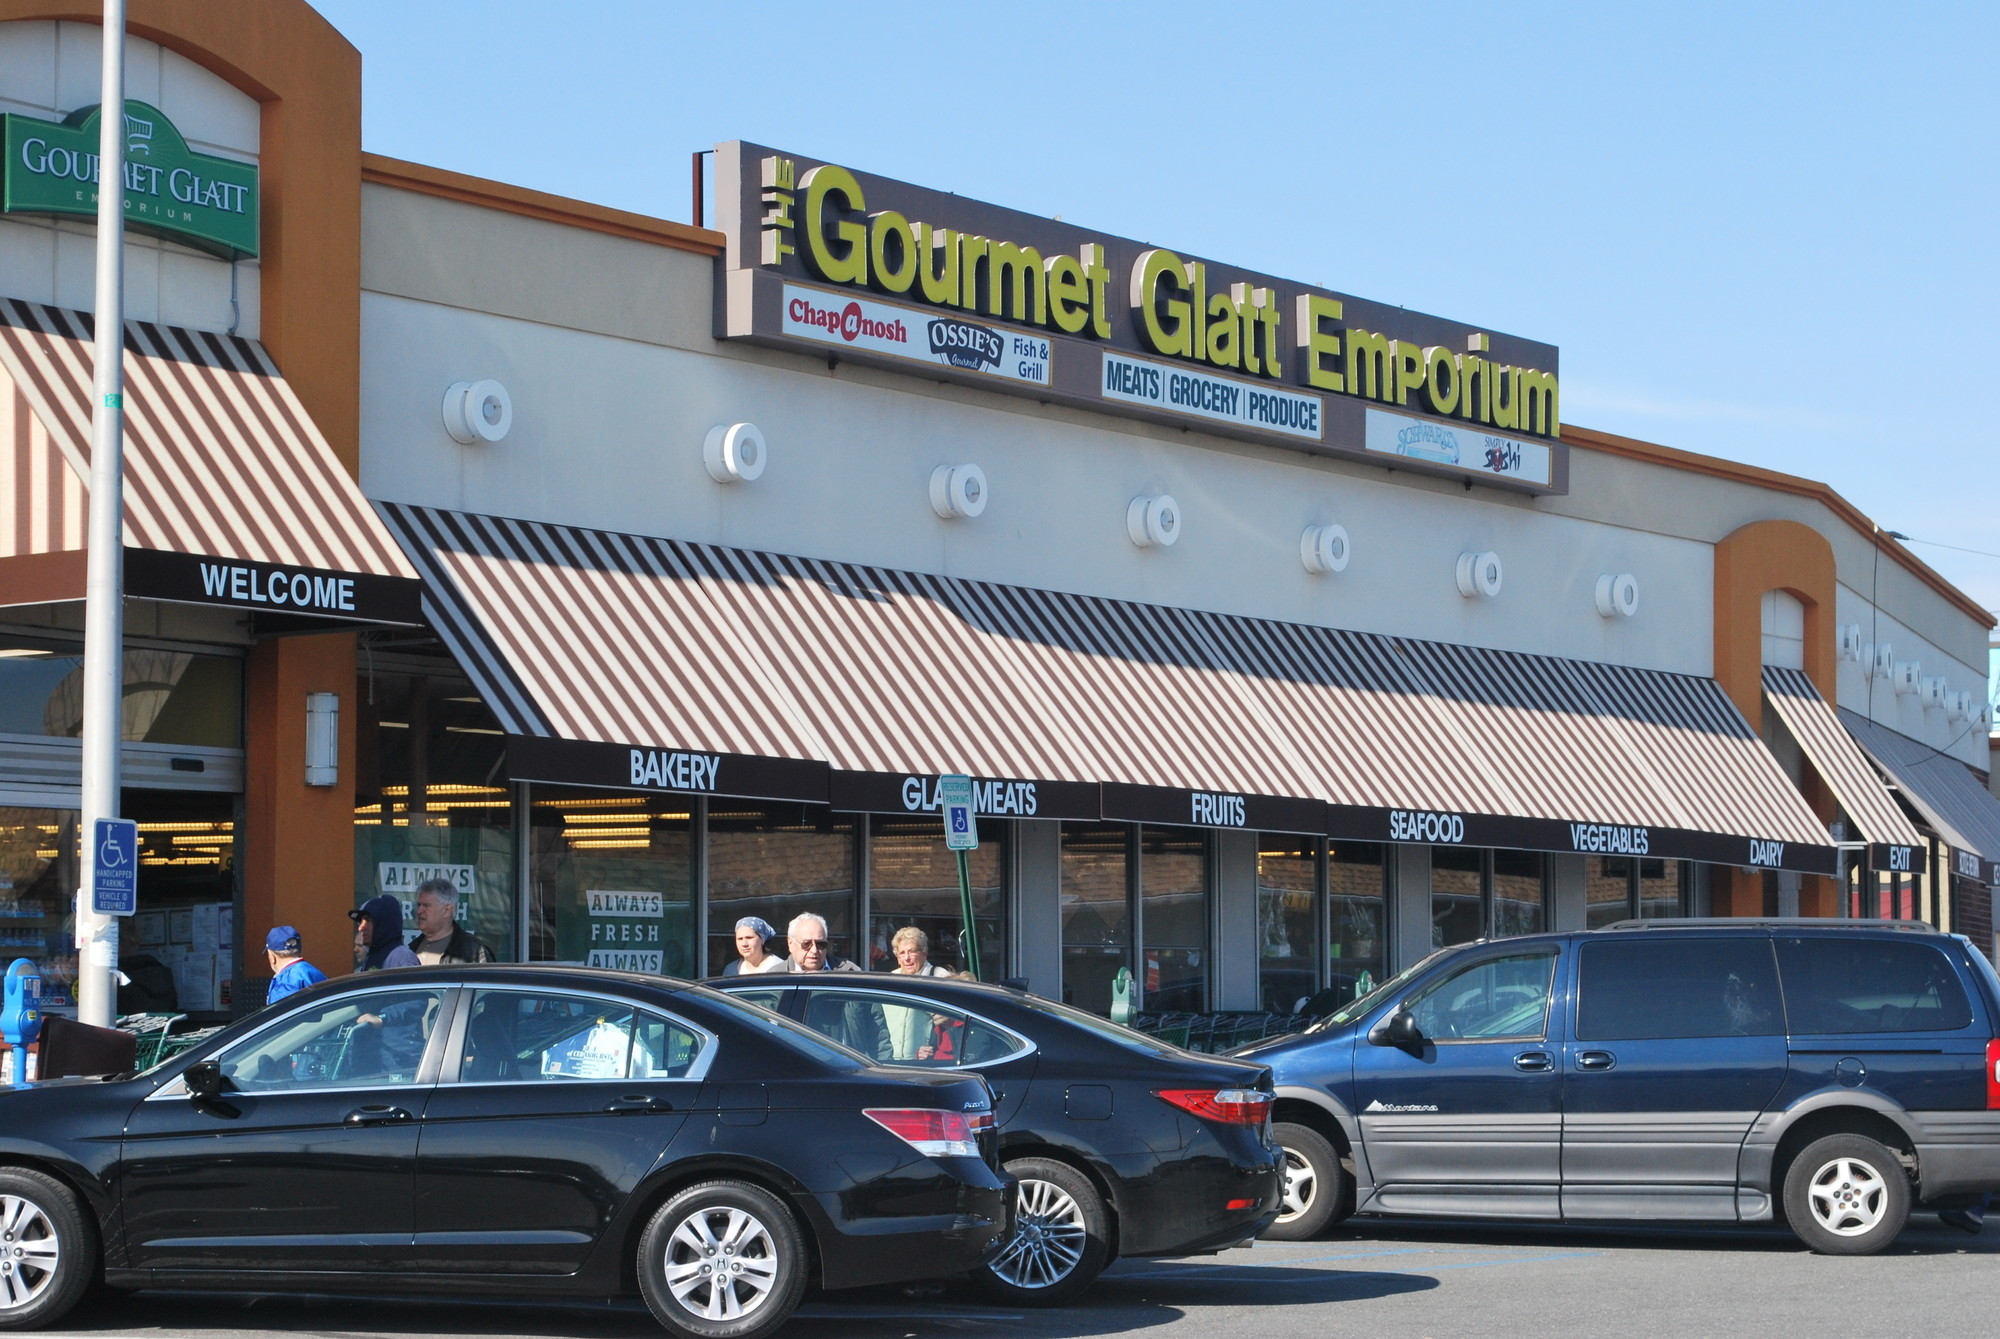 Gourmet Glatt will be checking thermal temperatures of shoppers prior to entering their stores.